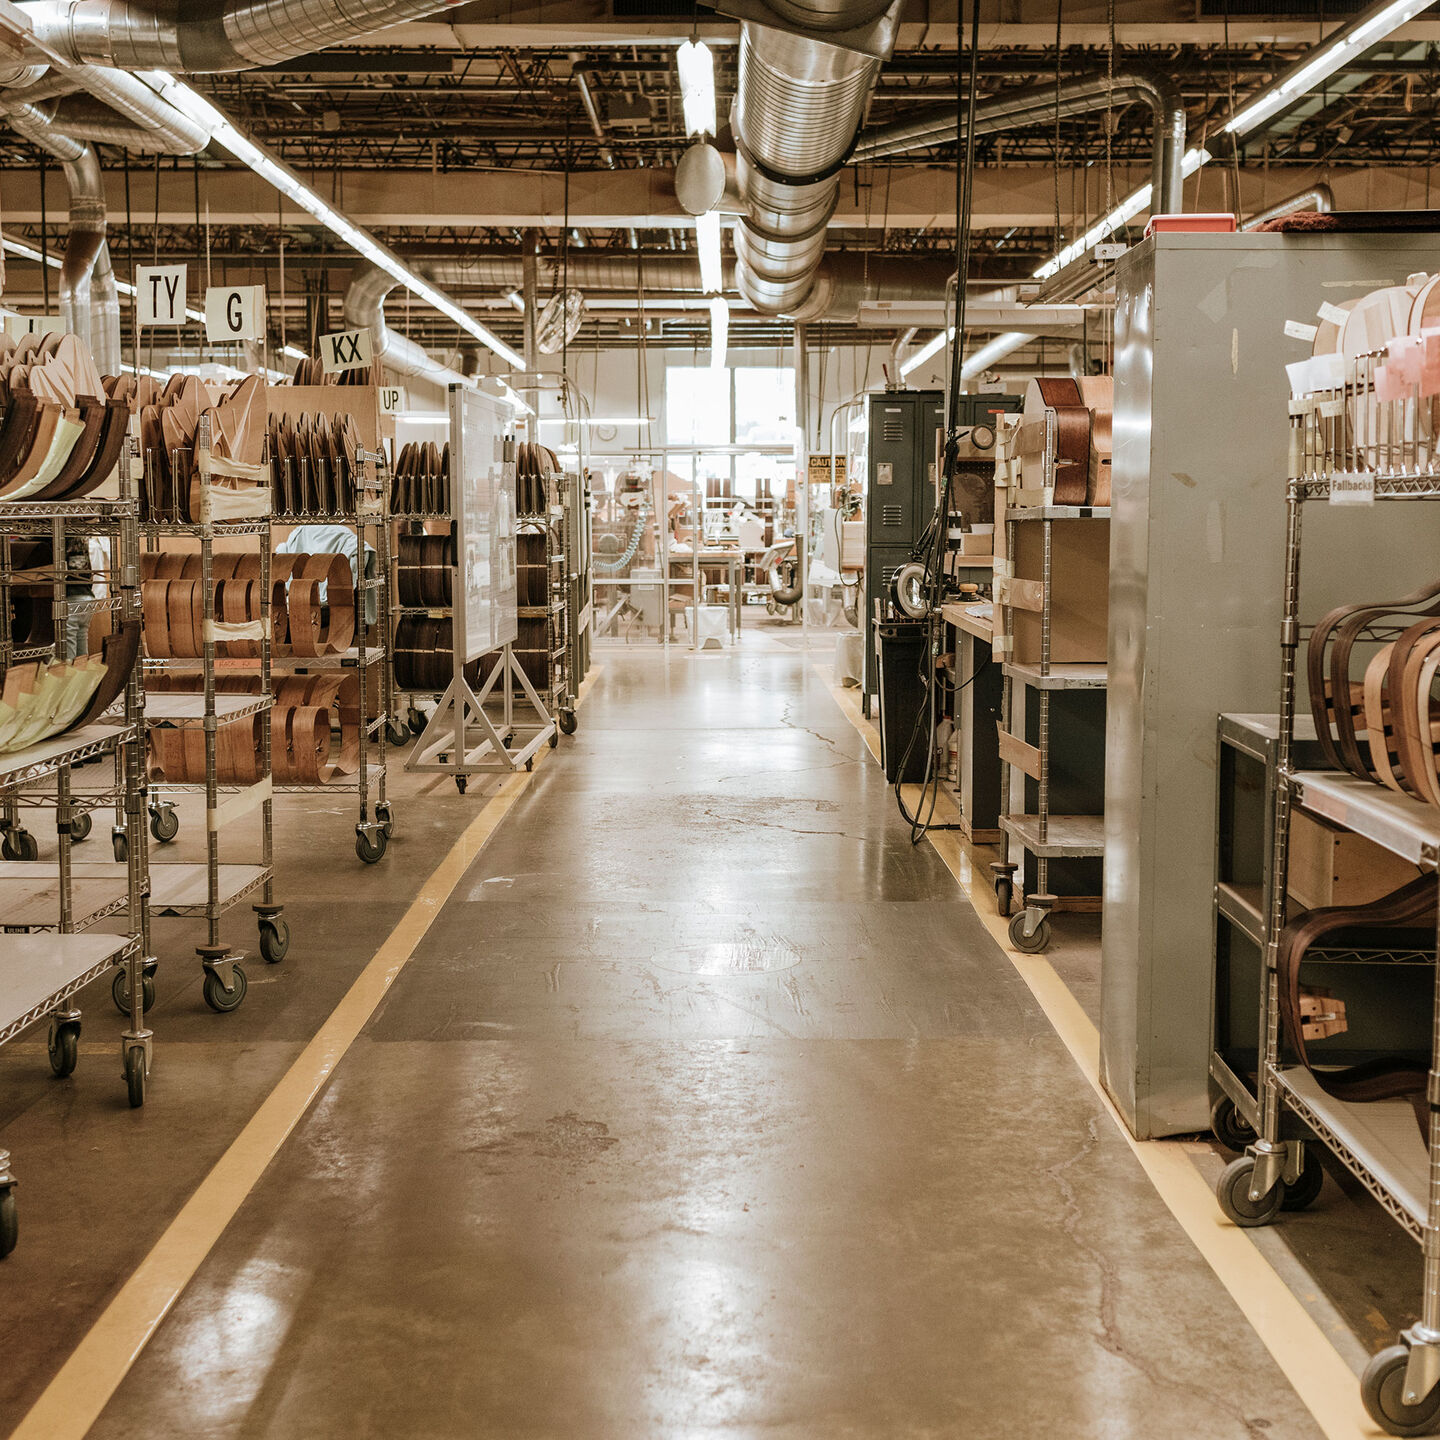 Factory with partially guilt guitars